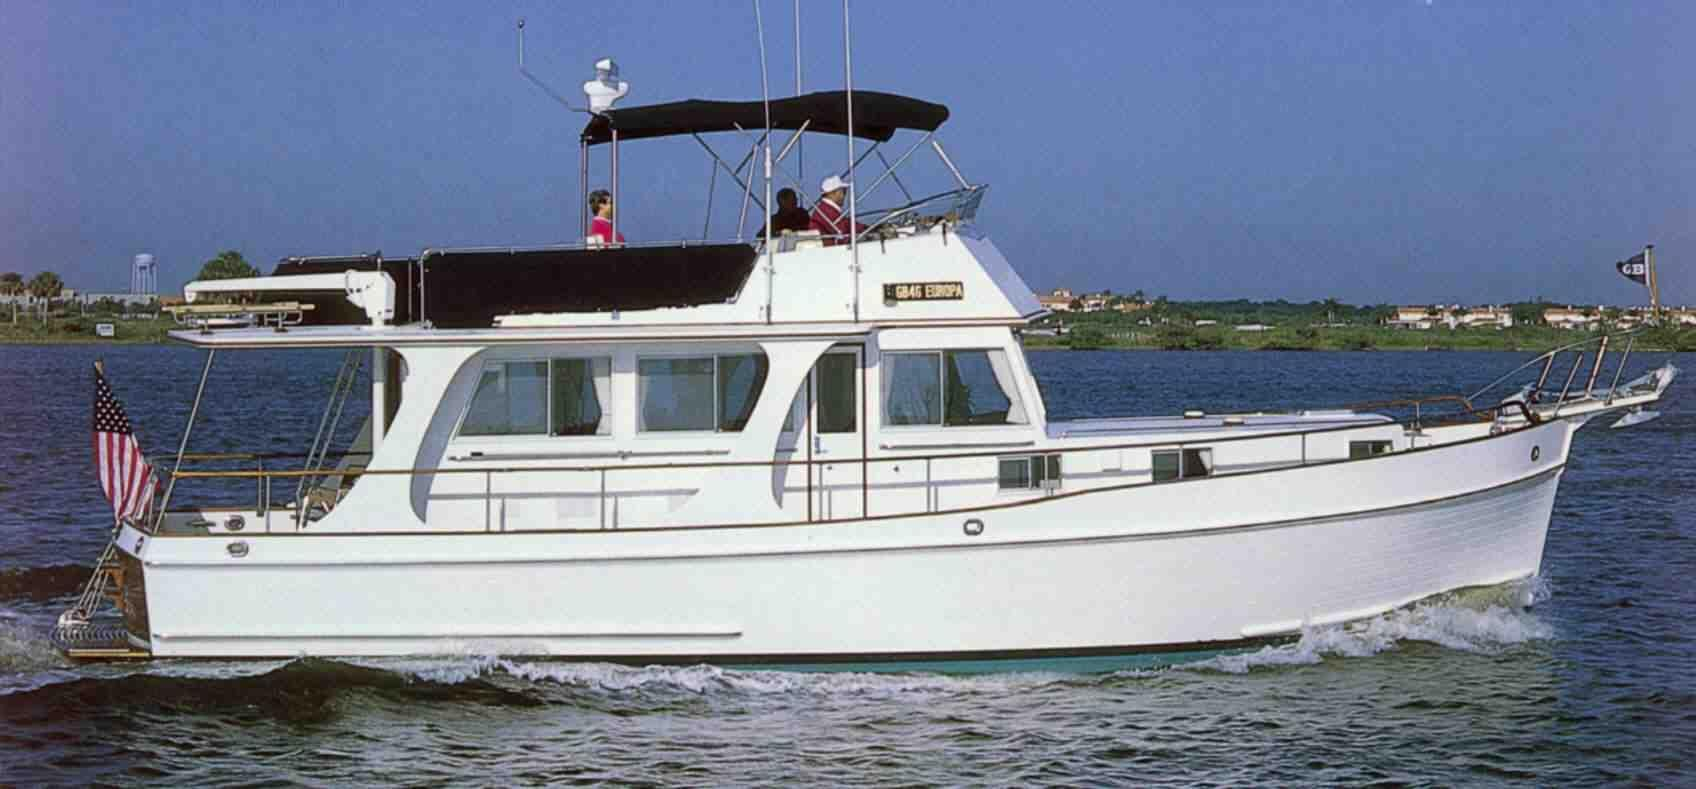 1997 grand banks 46 europa power boat for sale www for Grand banks motor yachts for sale